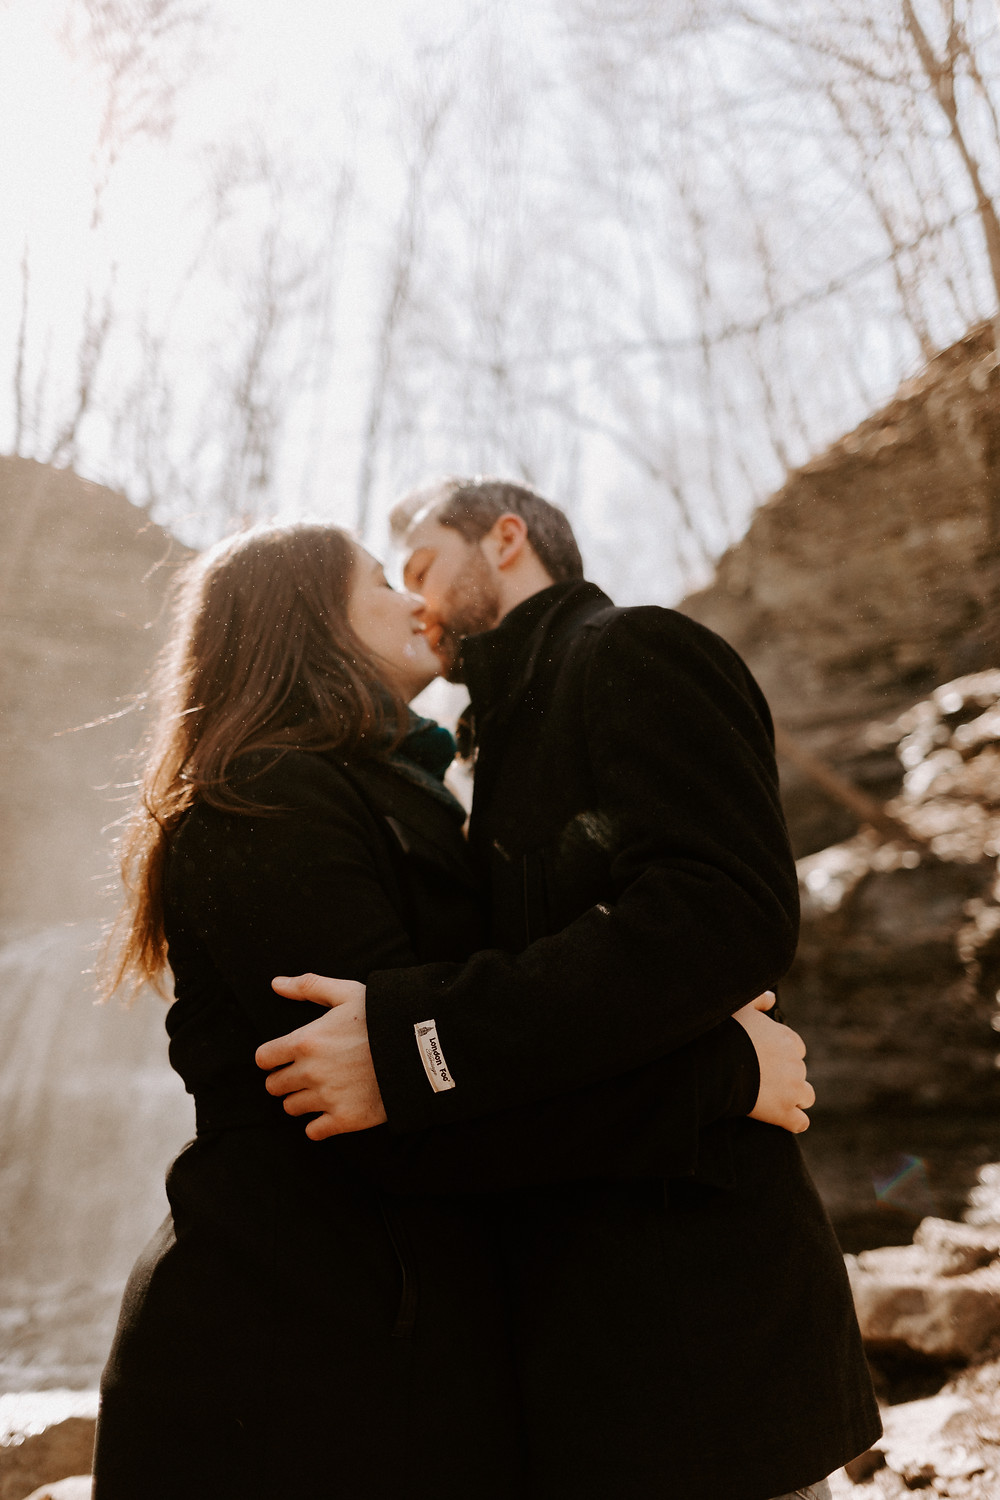 Hamilton Waterfall Engagement, Toronto Wedding Photographer, Danica Oliva Photography, Moody & Intimate Wedding Photographer, Ontario Wedding Photographer,